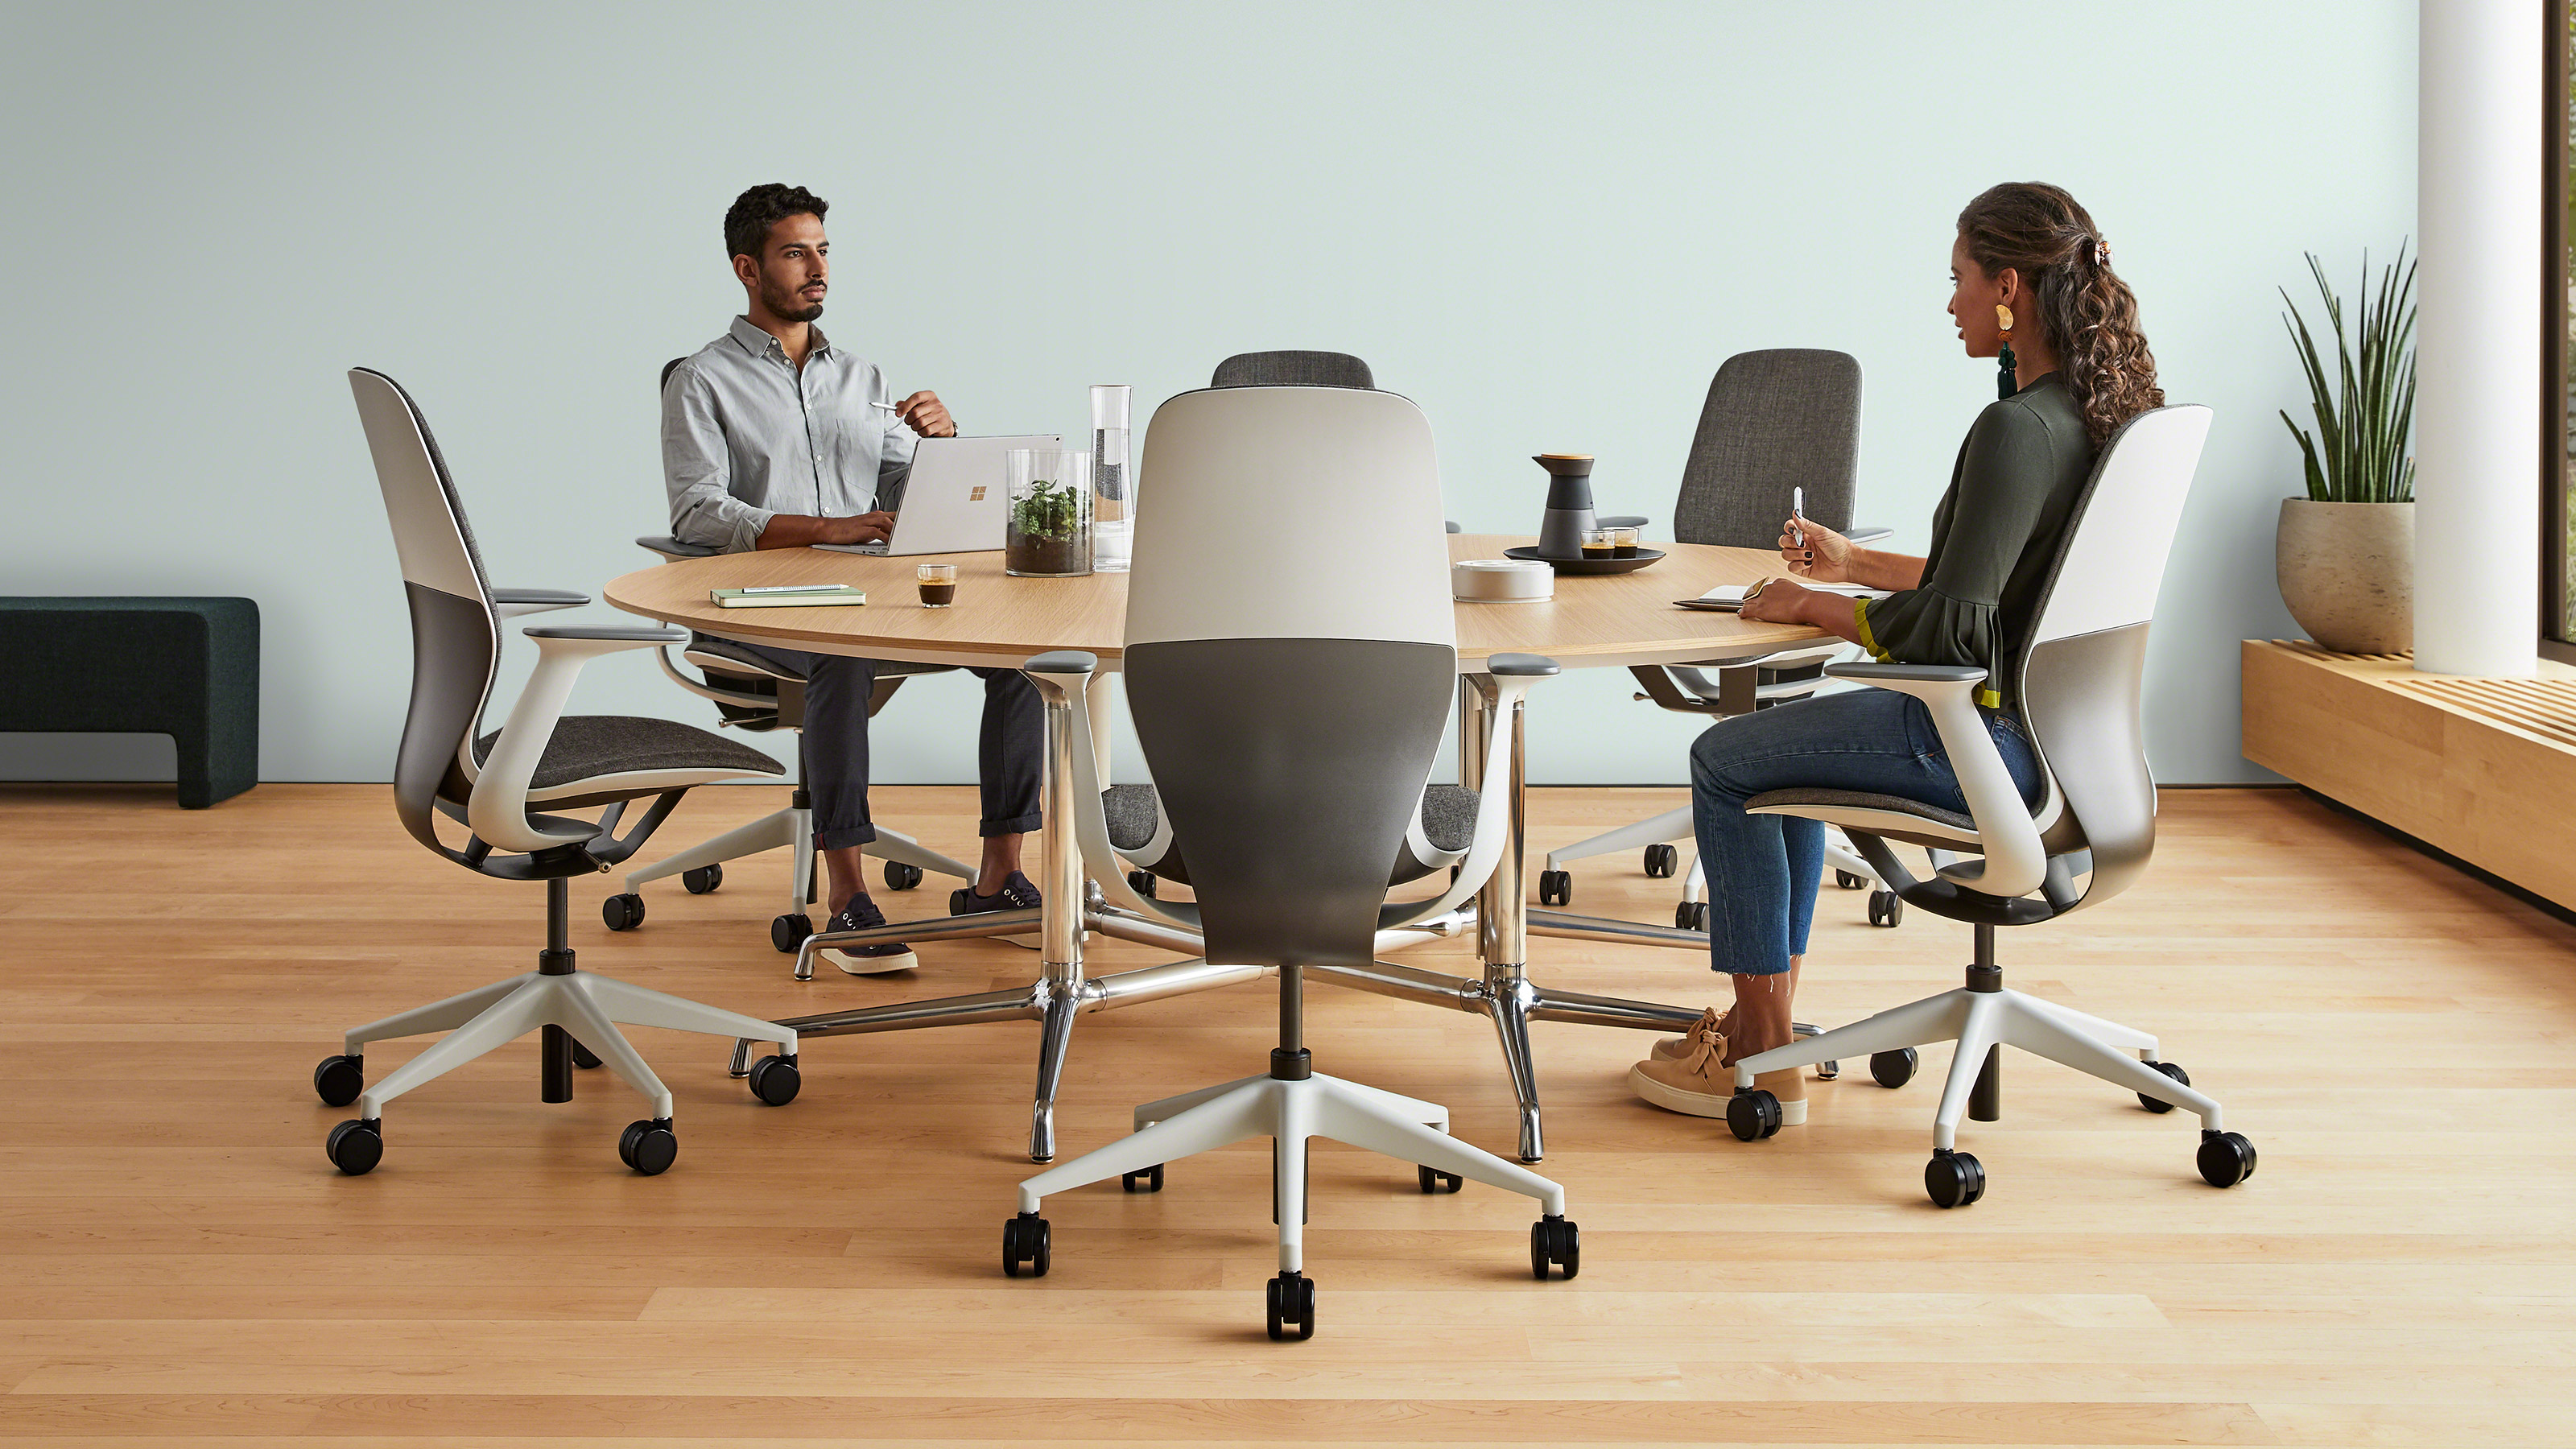 SILQ office chair from Steelcase